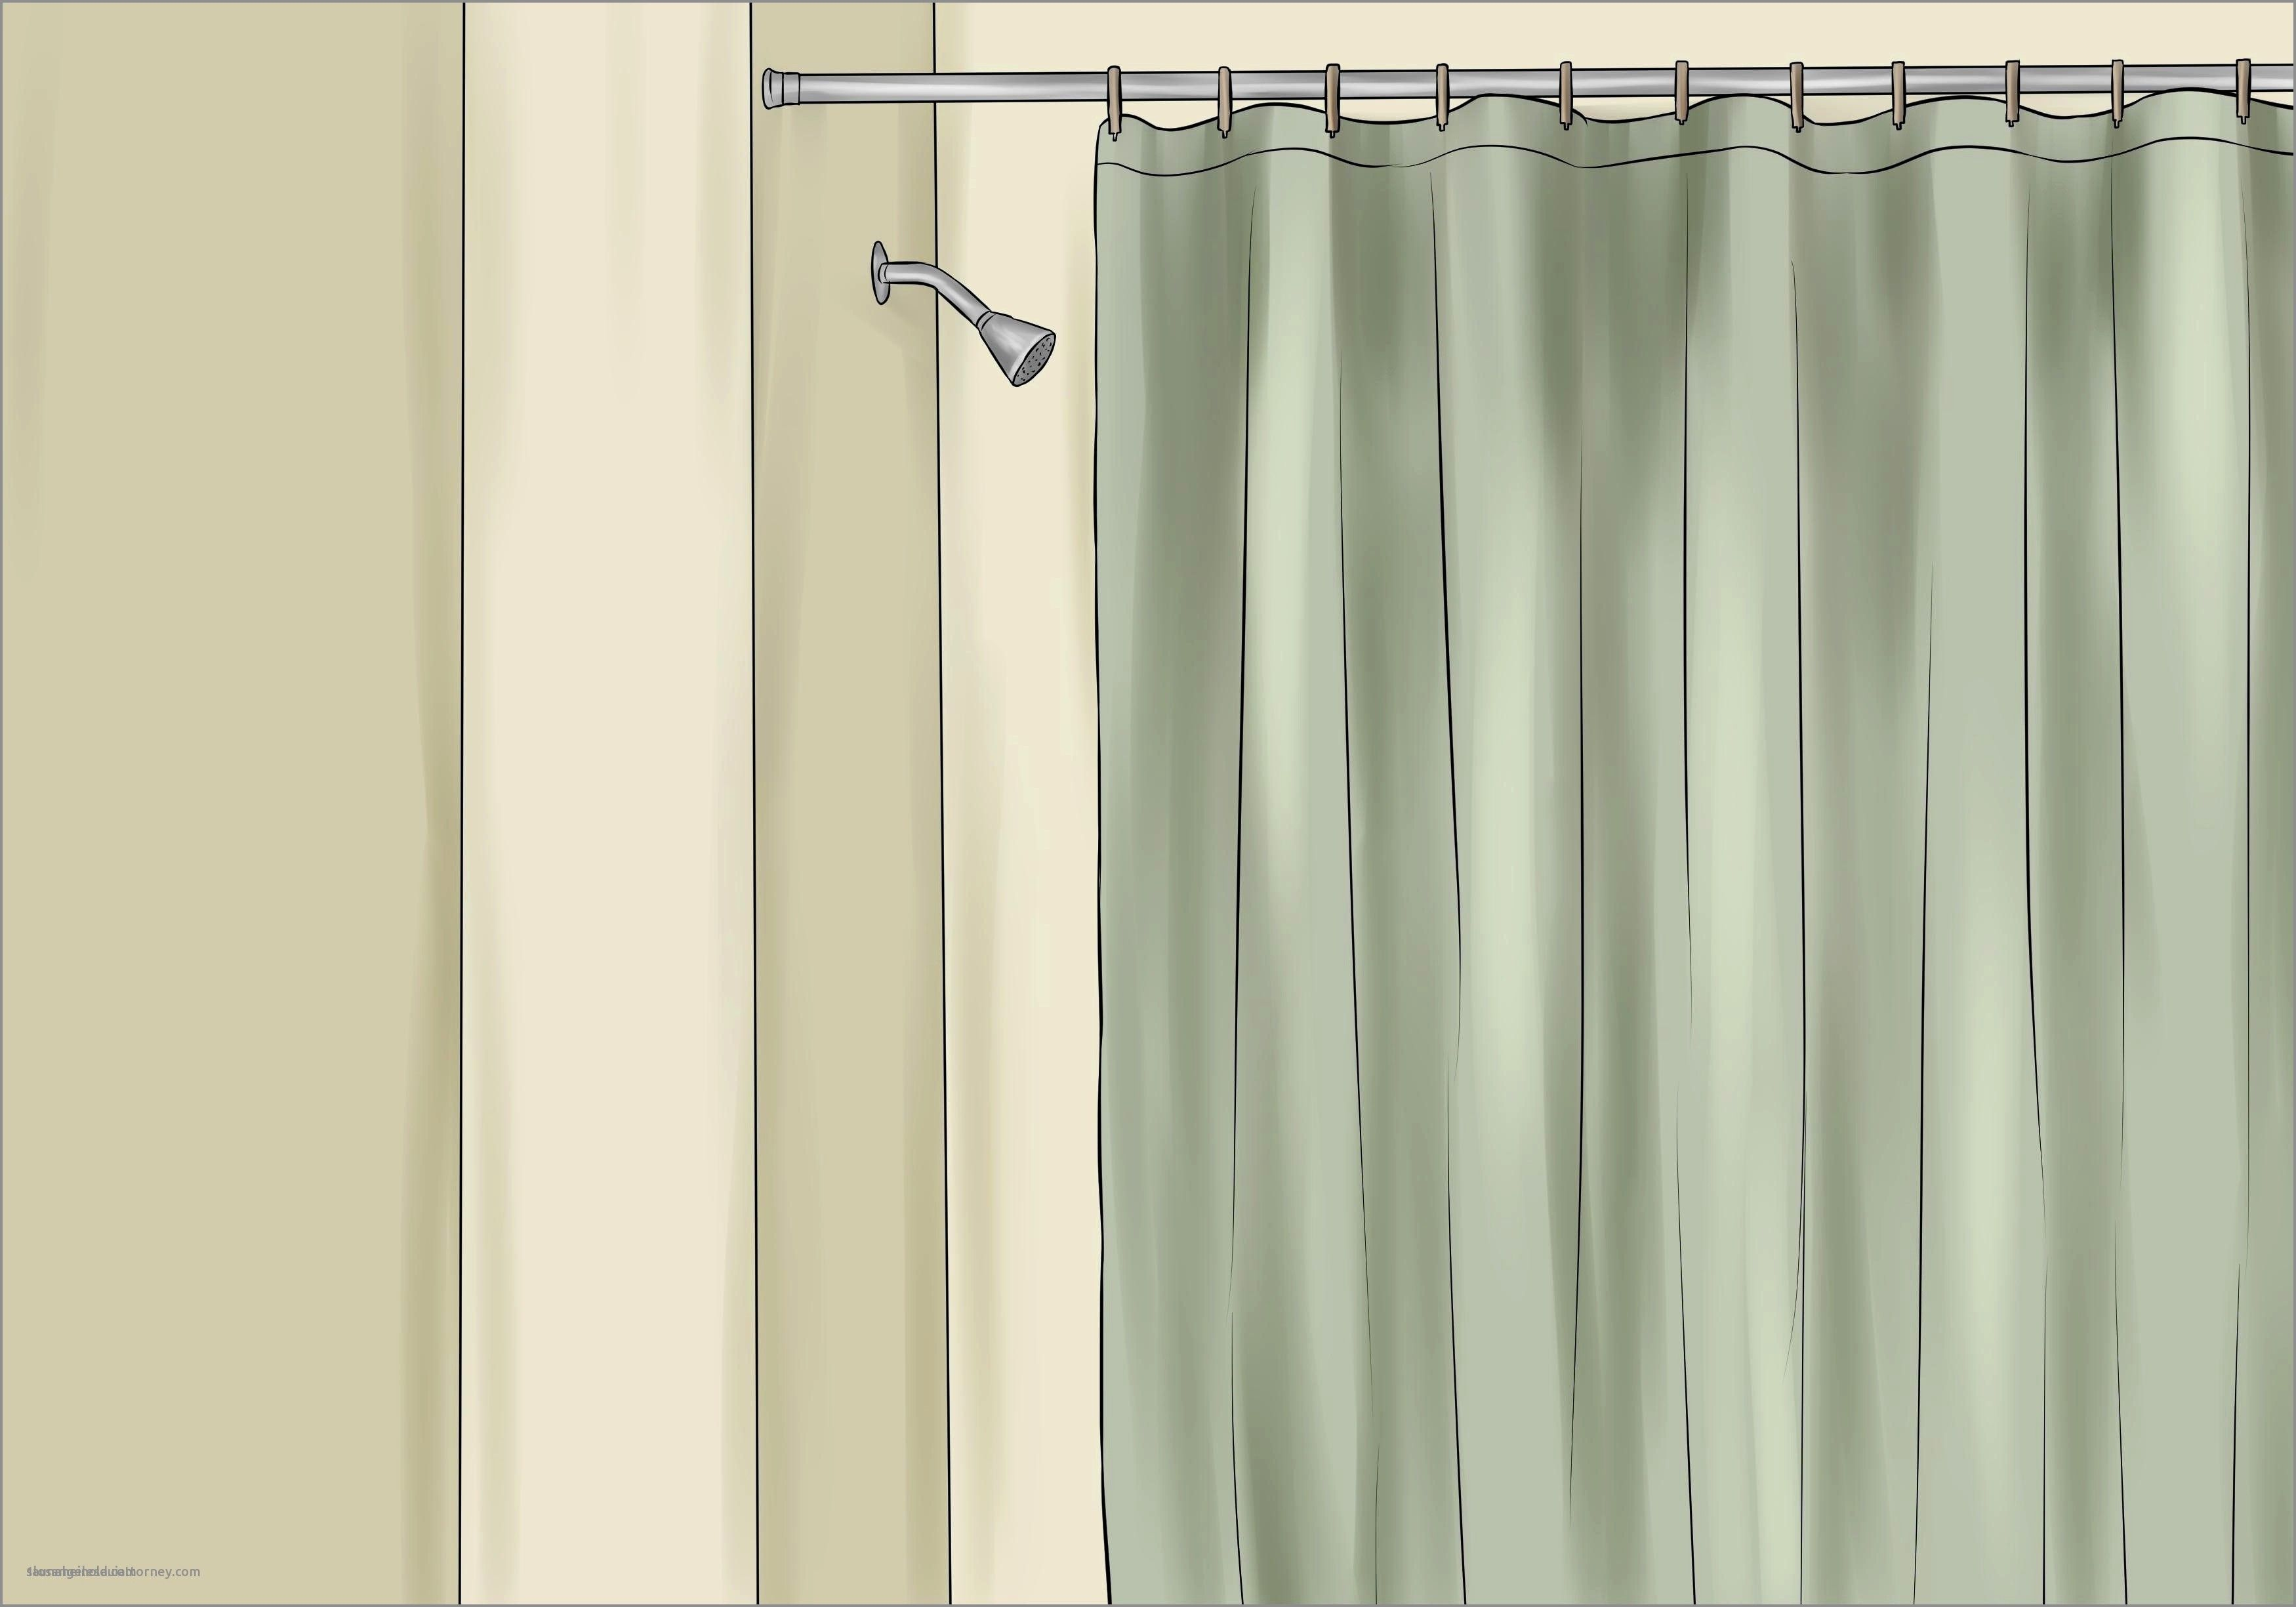 Shiny Lovely Cream Linen Curtains Photos 25 Awesome Sheer Top Shower Curtain